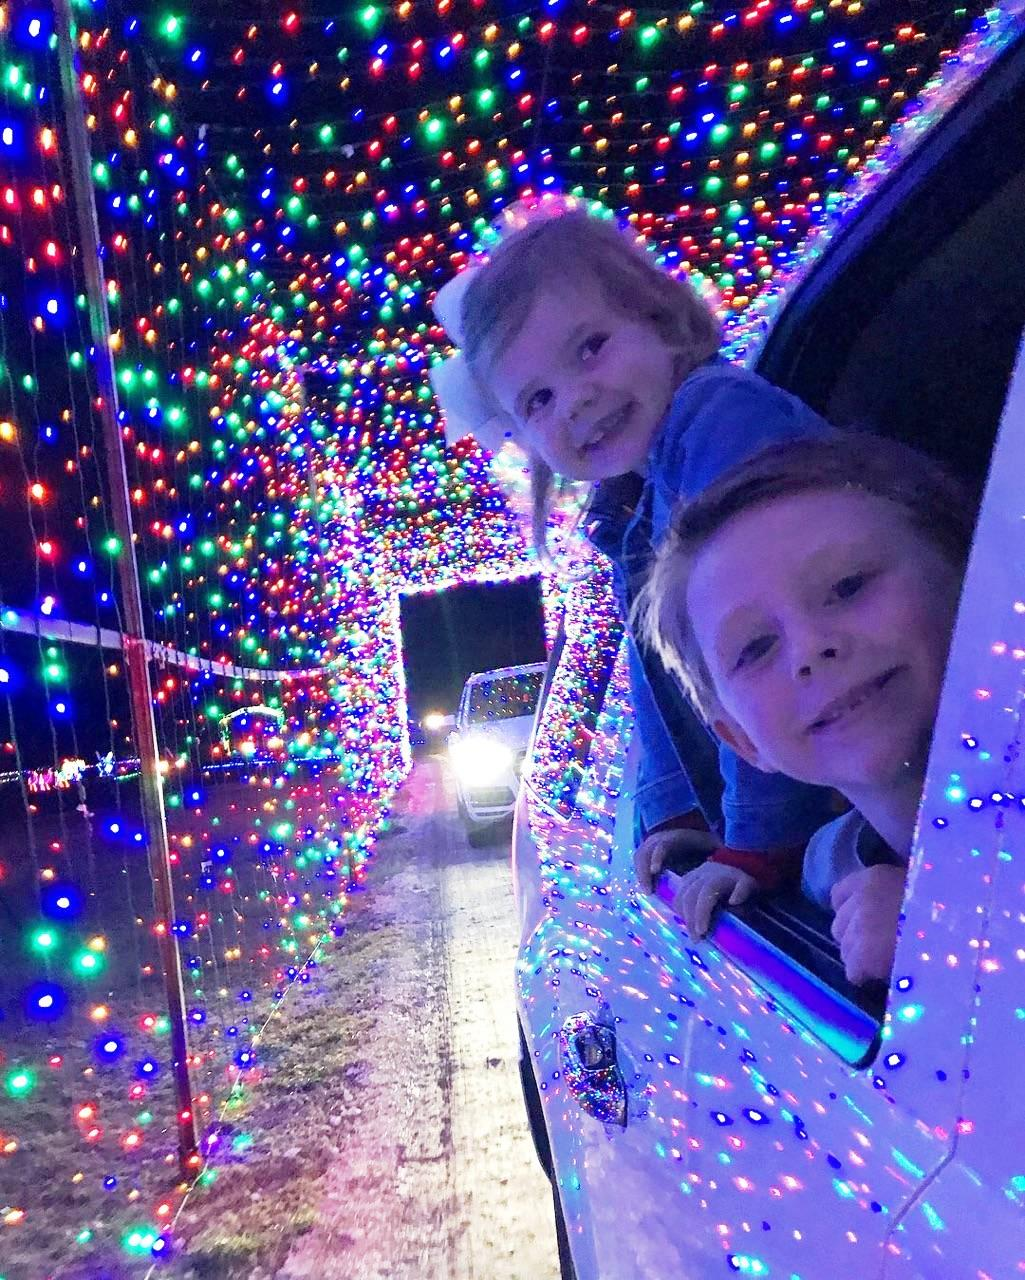 2018%20Children%20in%20Lights%20at%20Christmas%20Light%20Fest